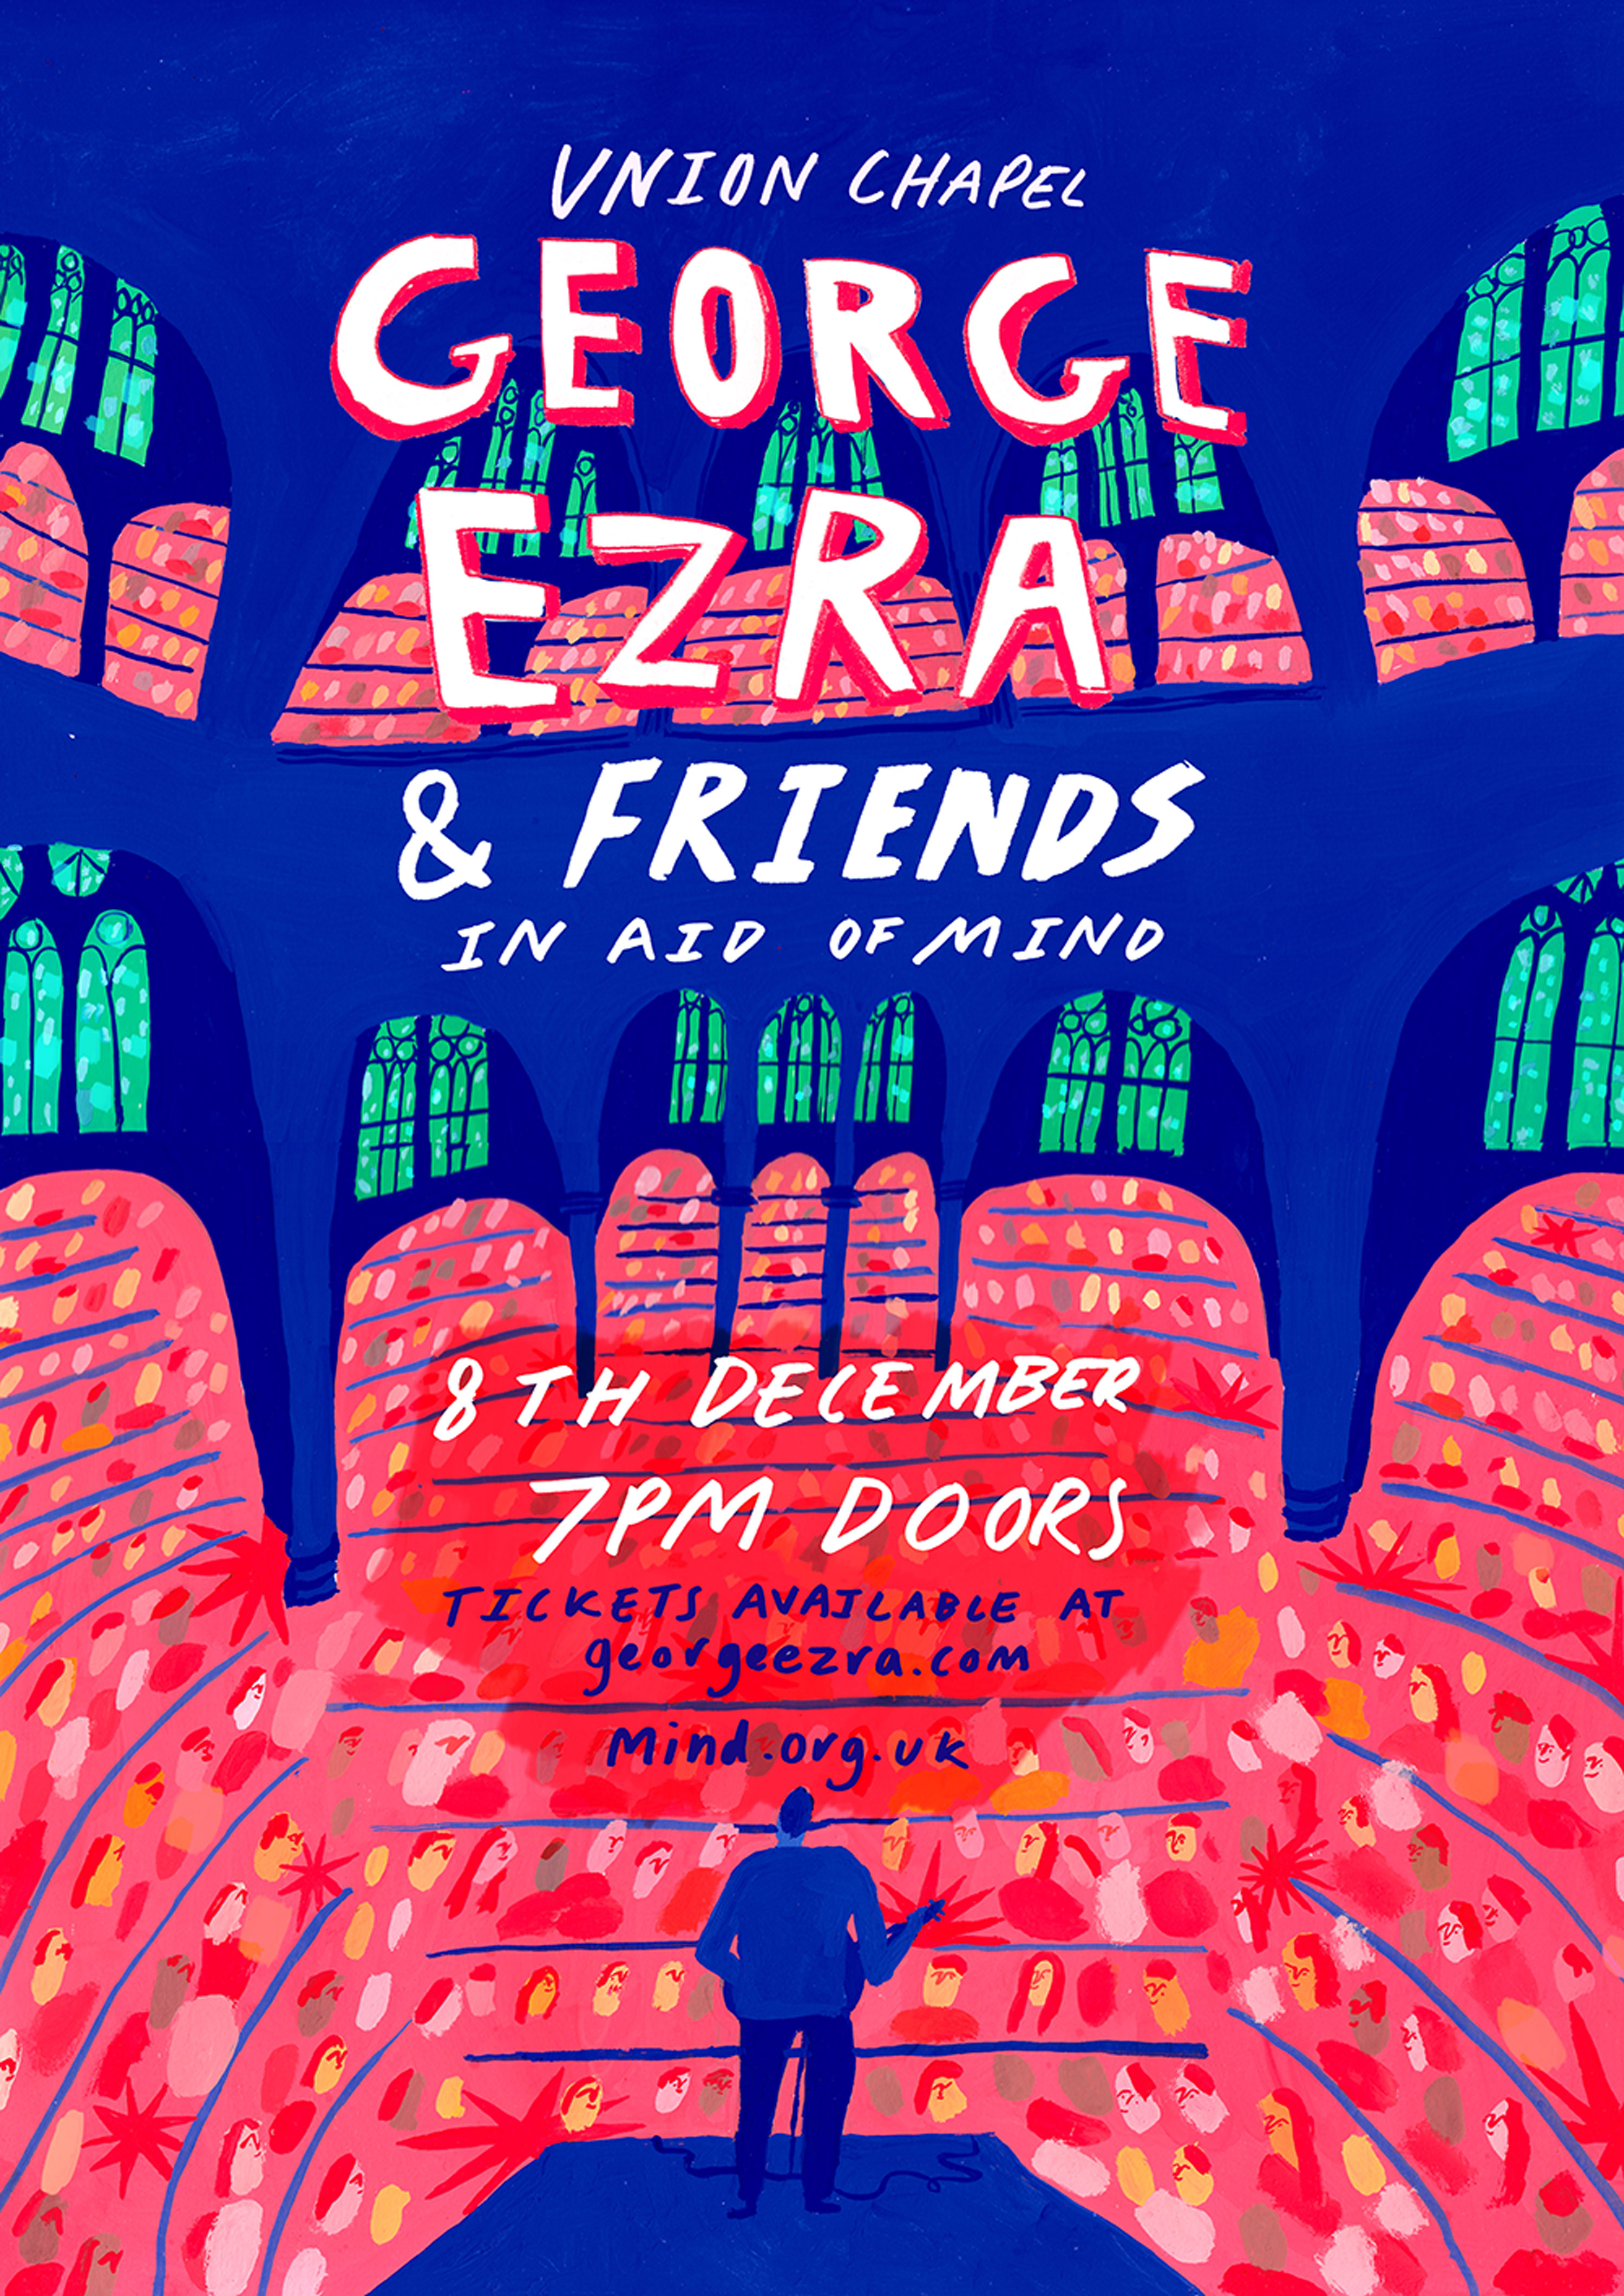 George Ezra & Friends, in aid of Mind